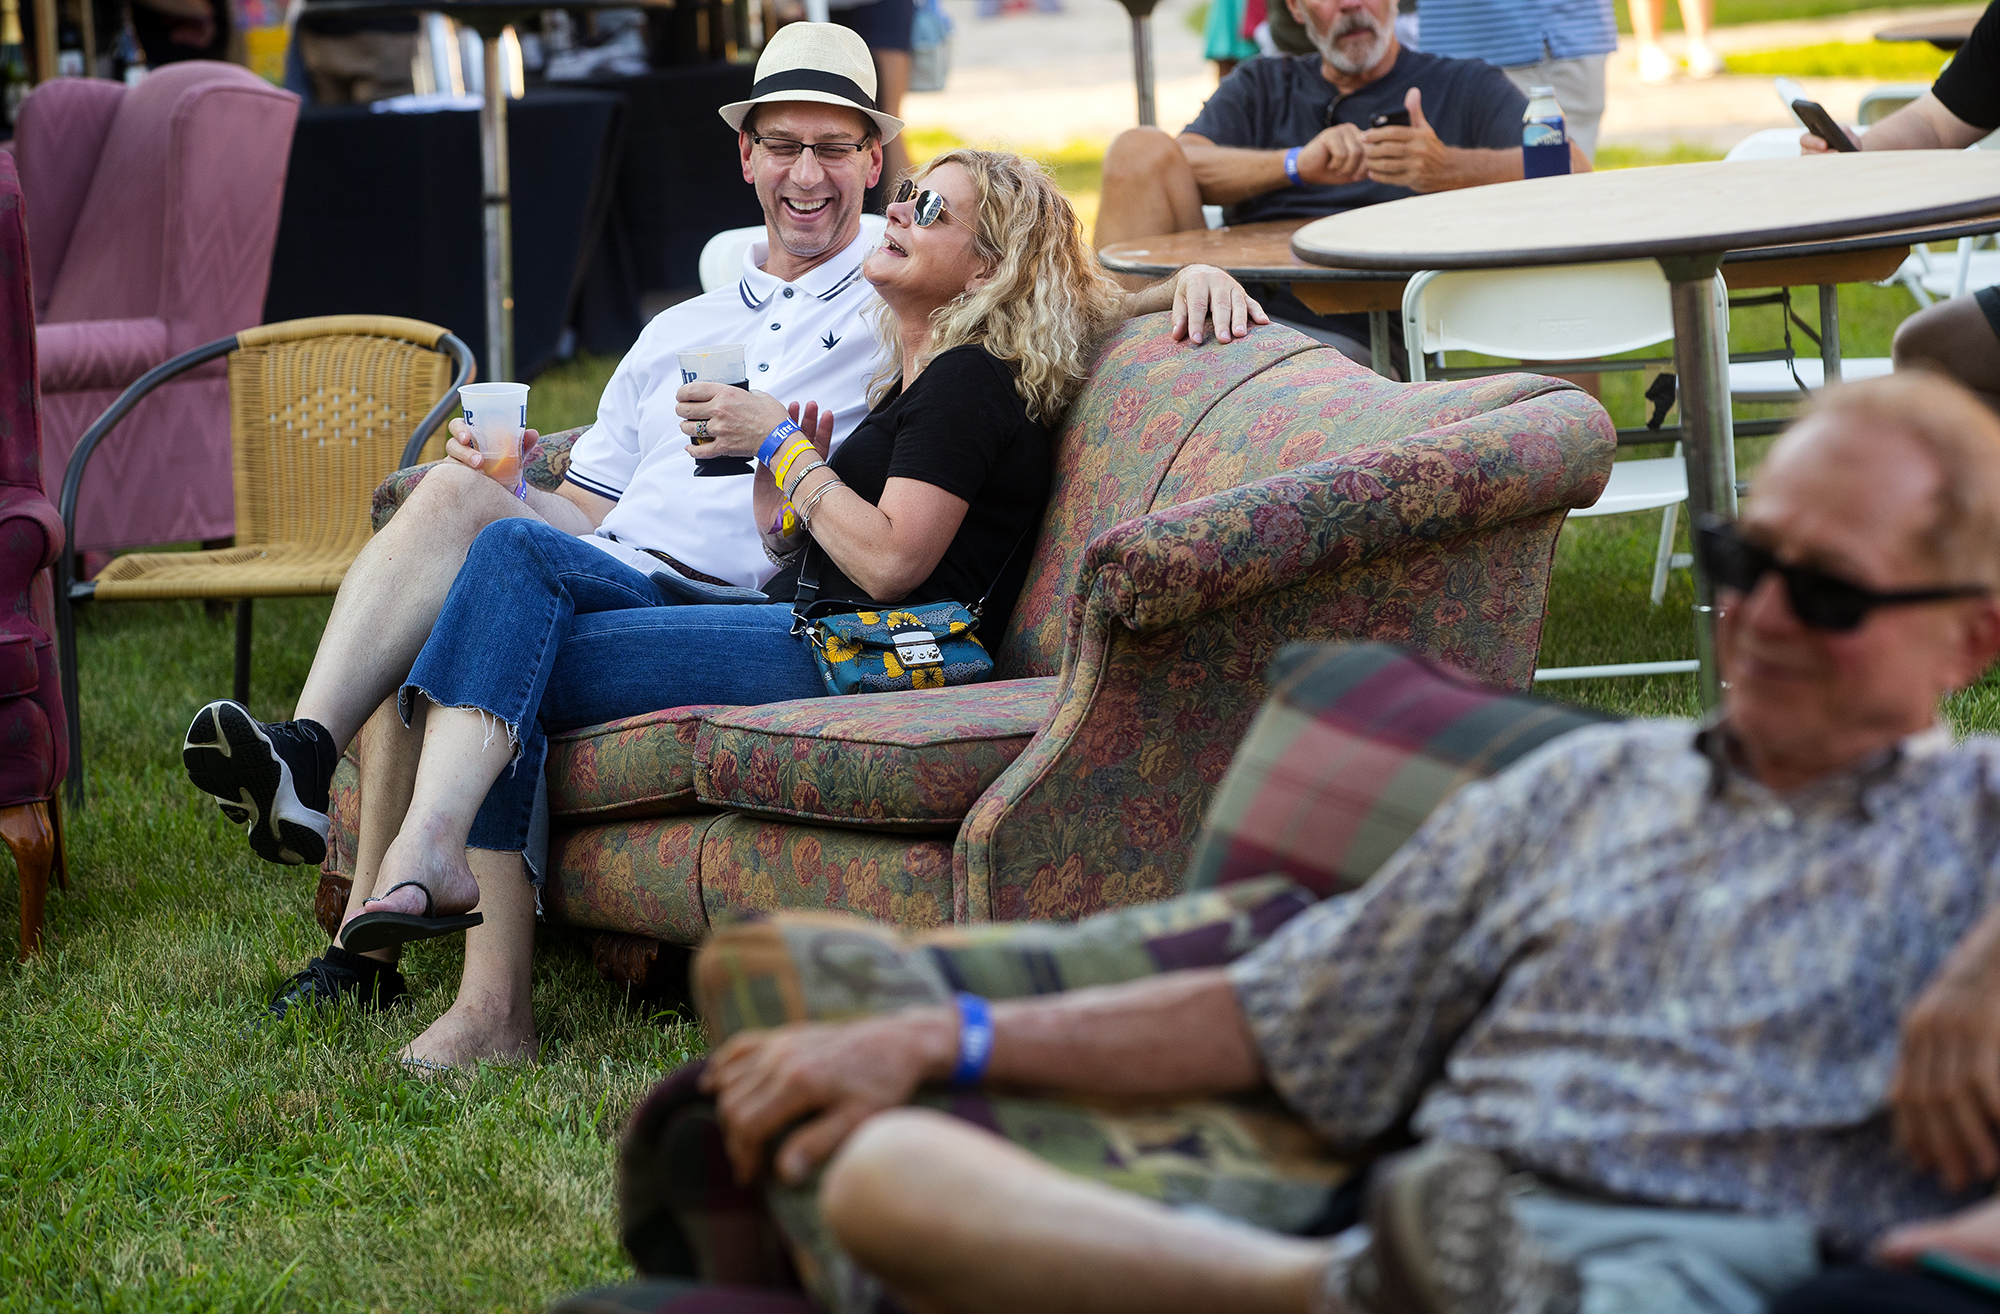 """Kurt Sames and Sue Ellen Busby laugh as they listen to music on the lawn of the Old State Capitol during the """"Amaranth Apple"""" Music & Food Fest Friday, July 13, 2018. The festival continues Saturday with free admission for guests under 12 years-old and $5 admission for everyone 13 years-old and up. [Ted Schurter/The State Journal-Register]"""